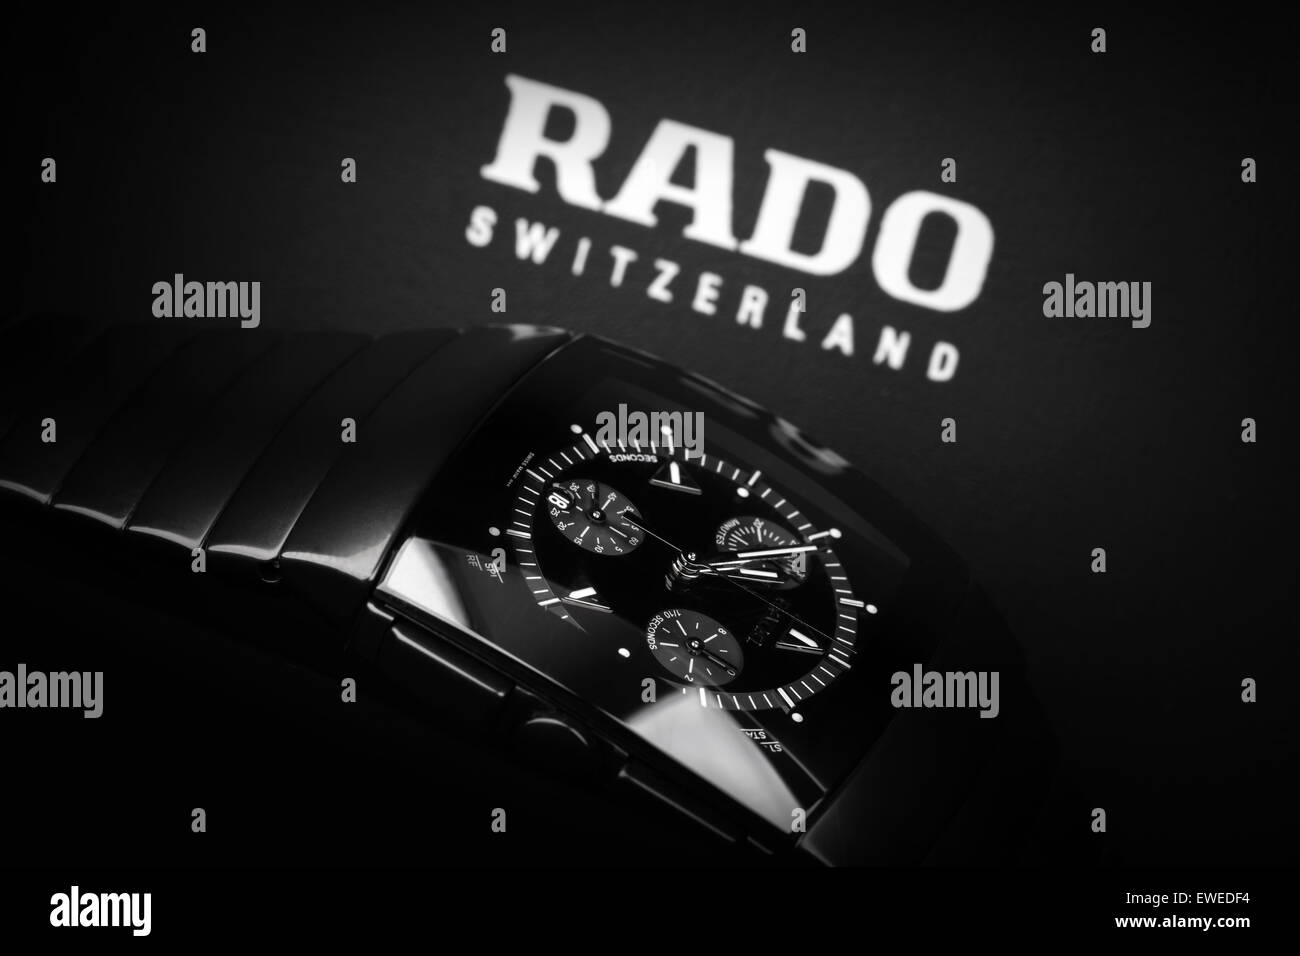 Saint-Petersburg, Russia - June 18, 2015: Rado Sintra Chrono, Mens chronograph watch made of high-tech ceramics - Stock Image